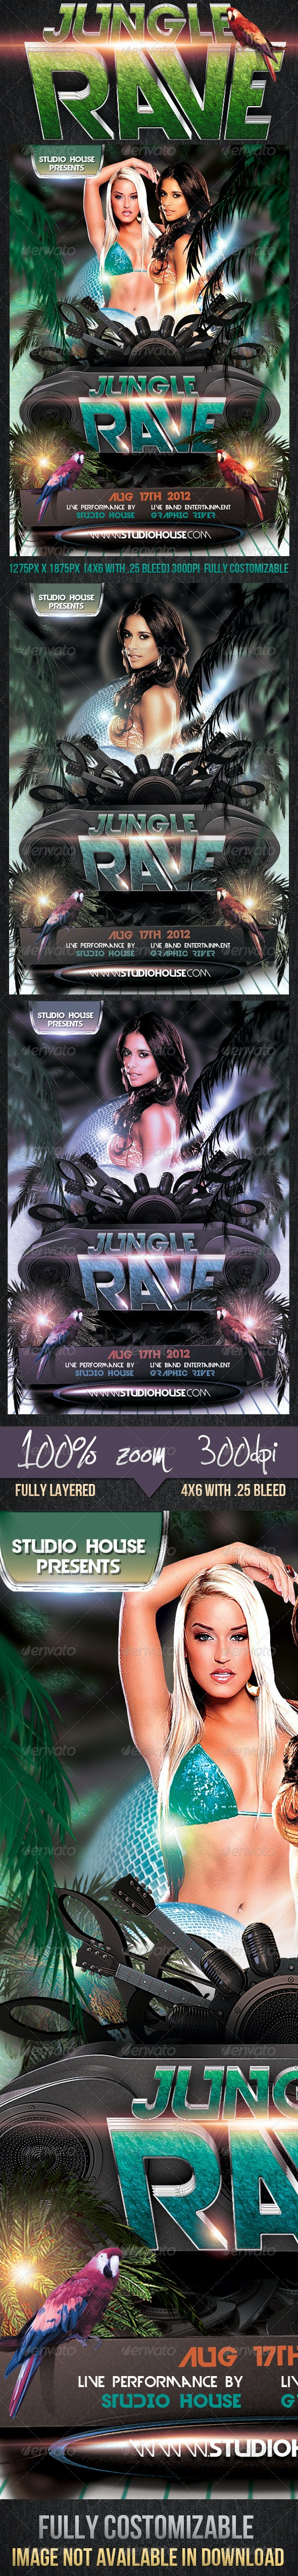 Jungle Rave Party Flyer - Clubs & Parties Events